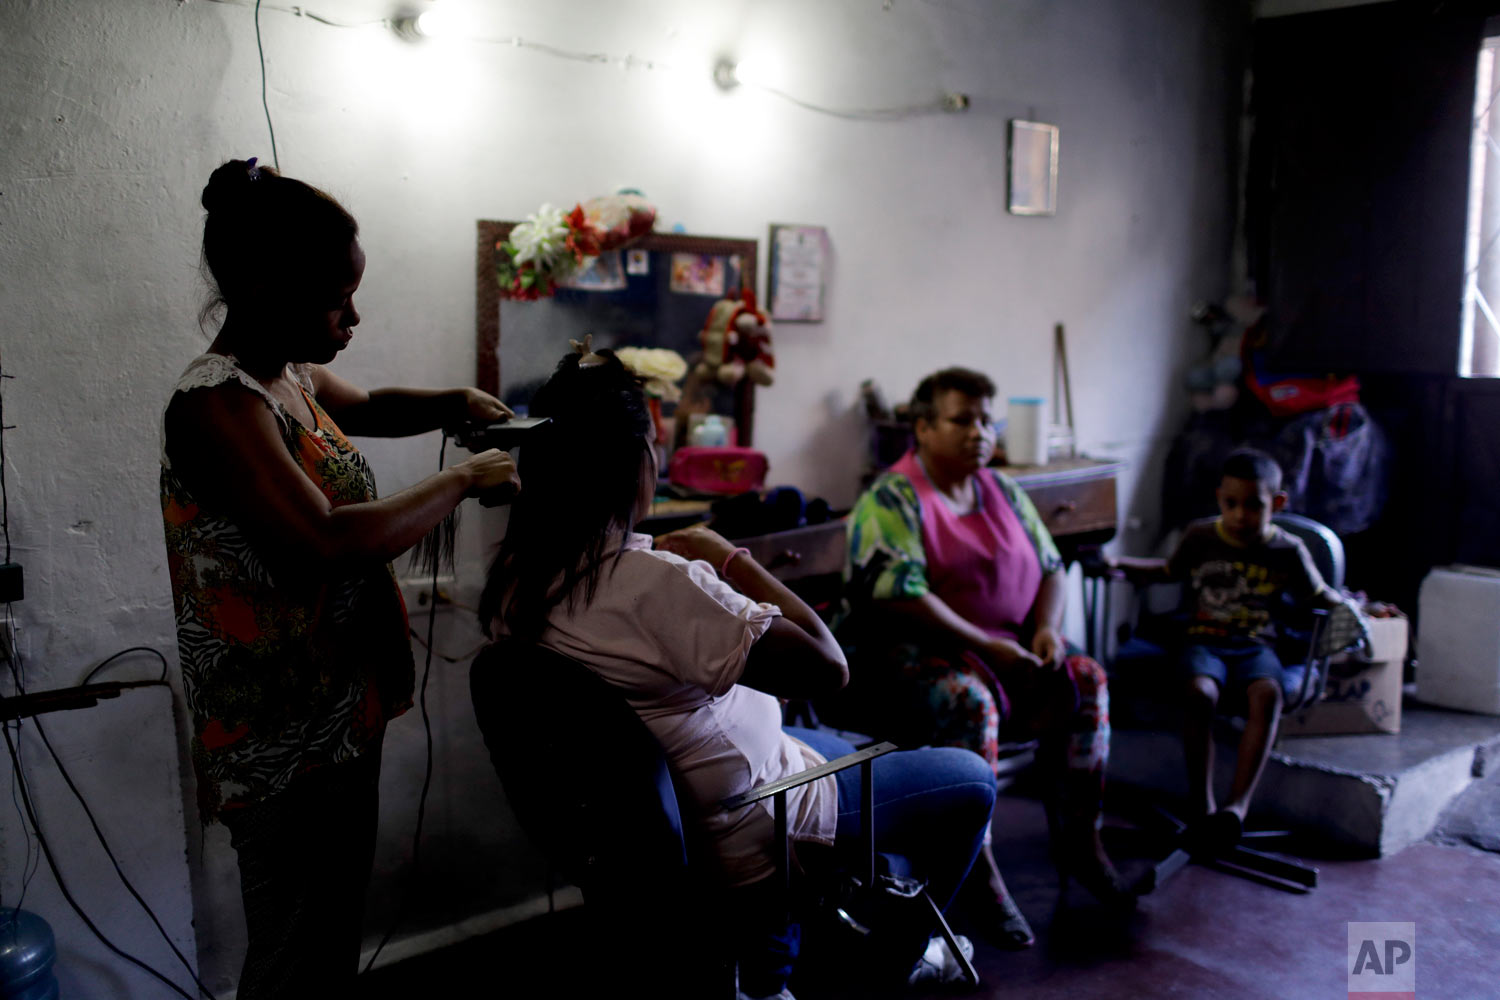 Hair dresser Rosevel Velazquez attends a customer at her beauty salon, which she runs out of her home in Caracas, Venezuela, Wednesday, March 20, 2019.  (AP Photo/Natacha Pisarenko)